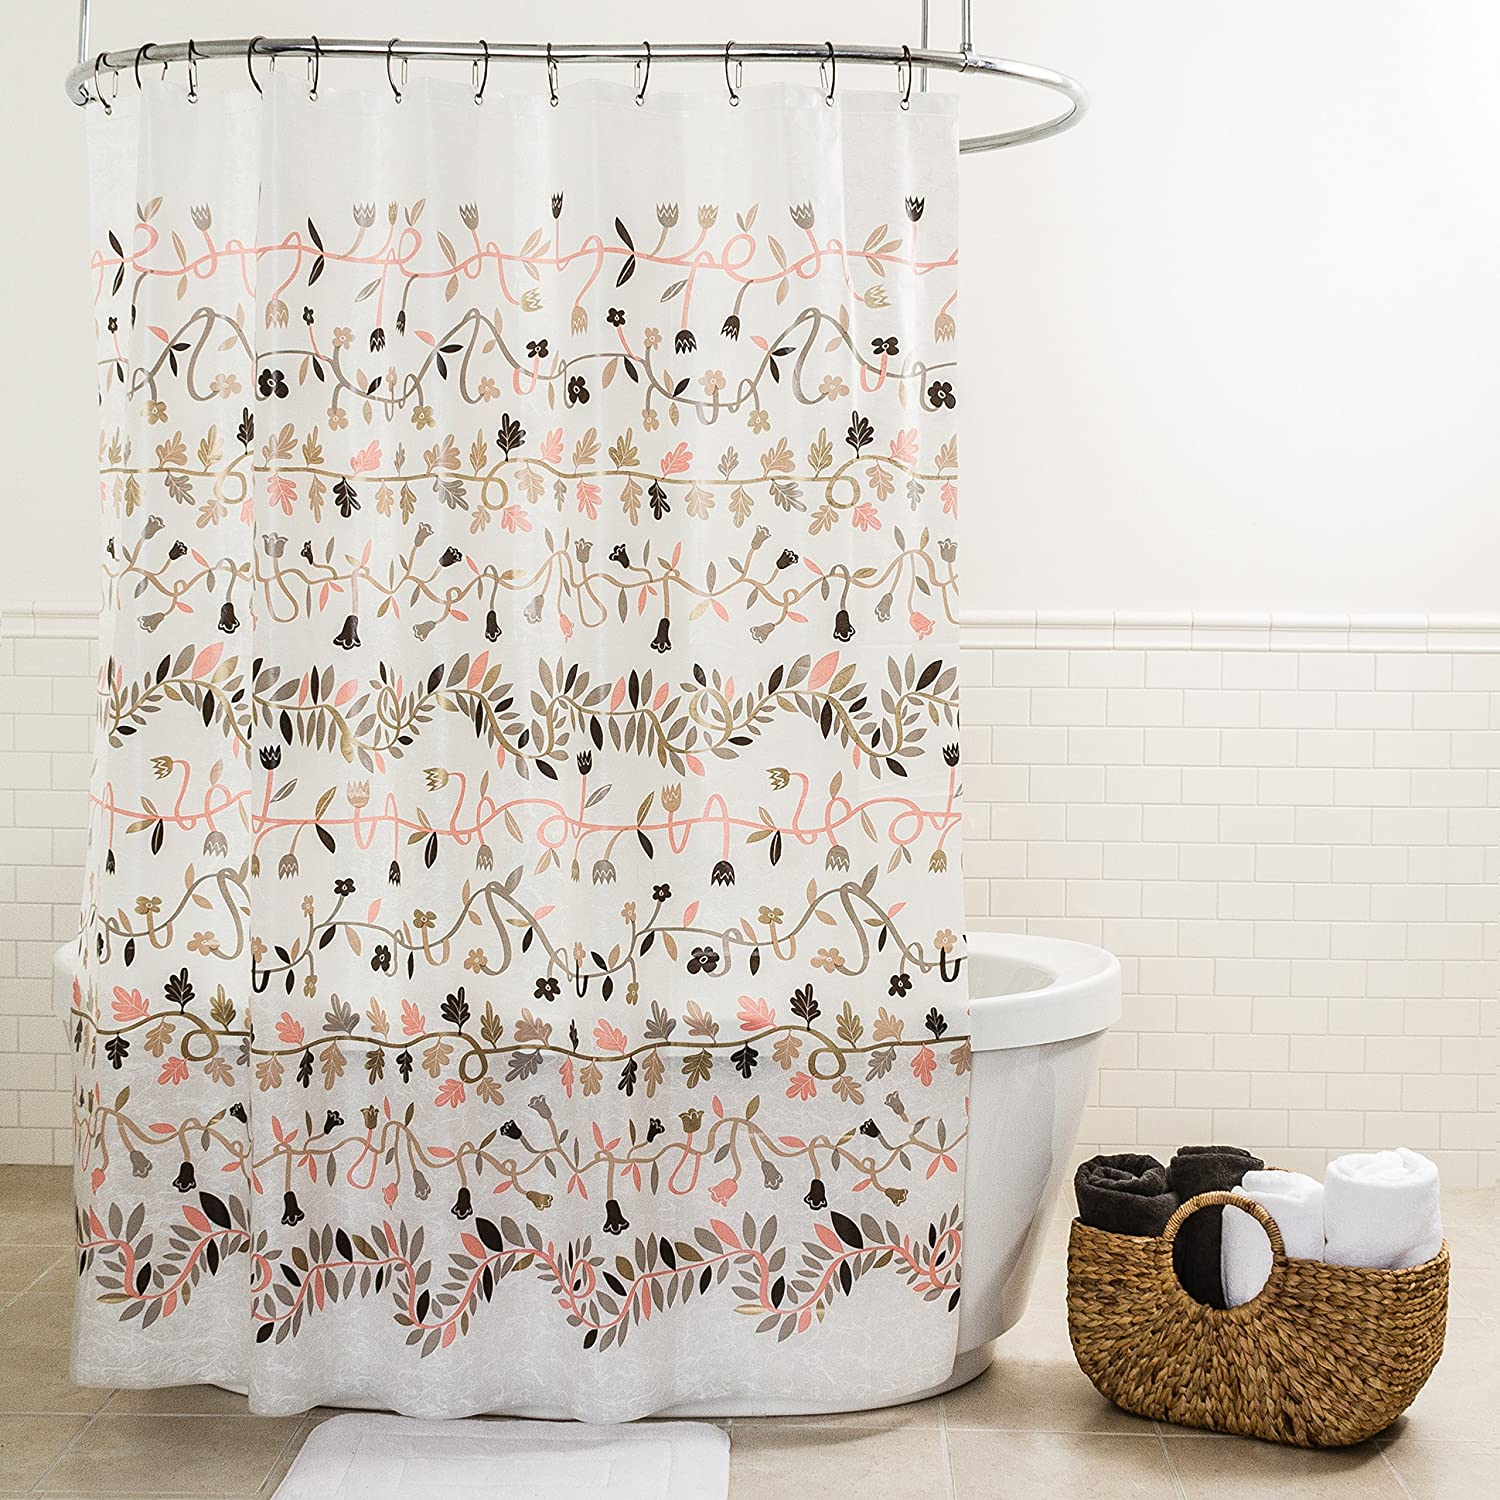 Splash Home Peva 4G Ivy Shower Curtain Liner Design For Bathroom Showers And Bathtubs